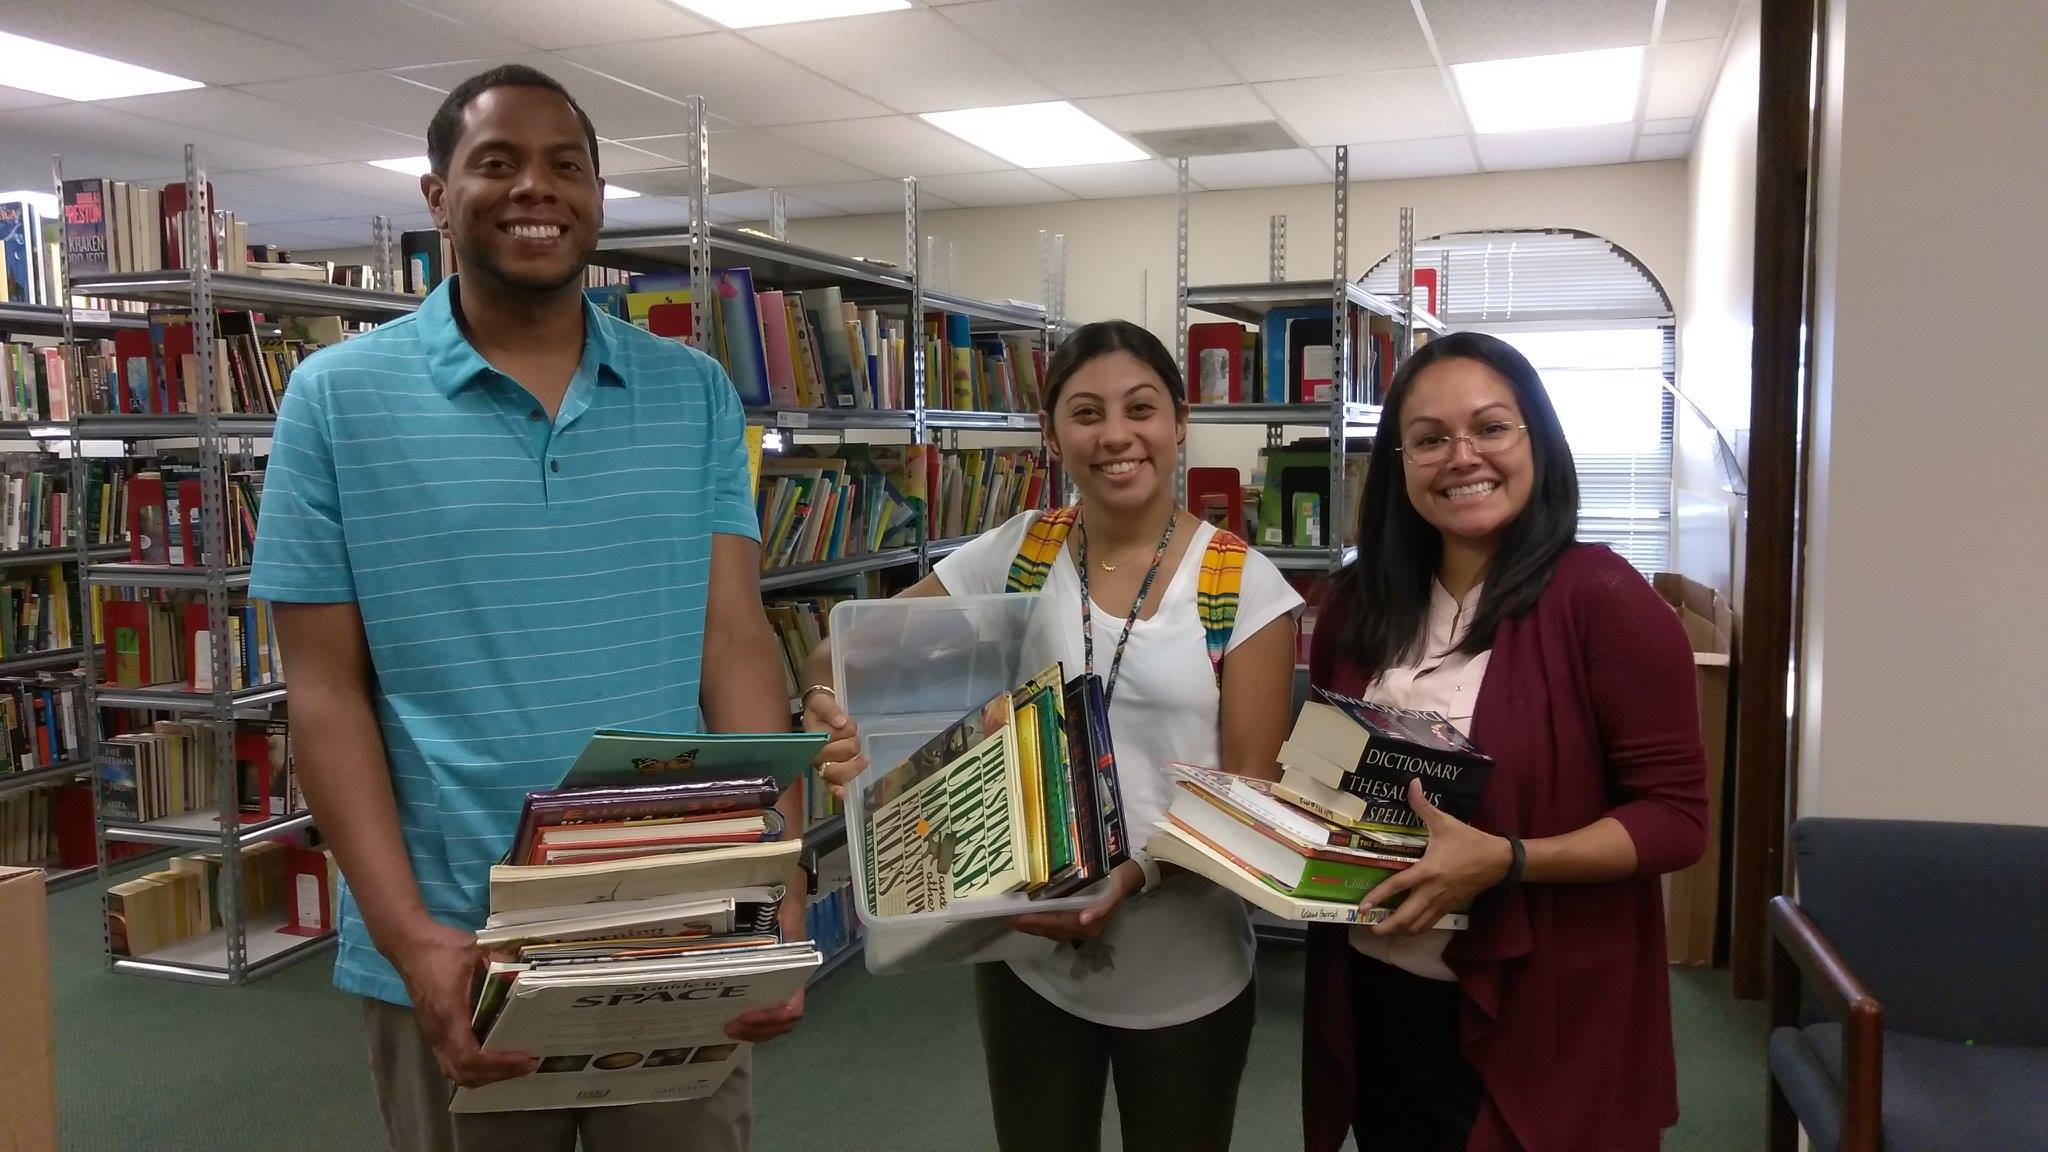 SAReads continues to collect Summer Book Drive Books and hopes to reopen the Book Bank request process soon.